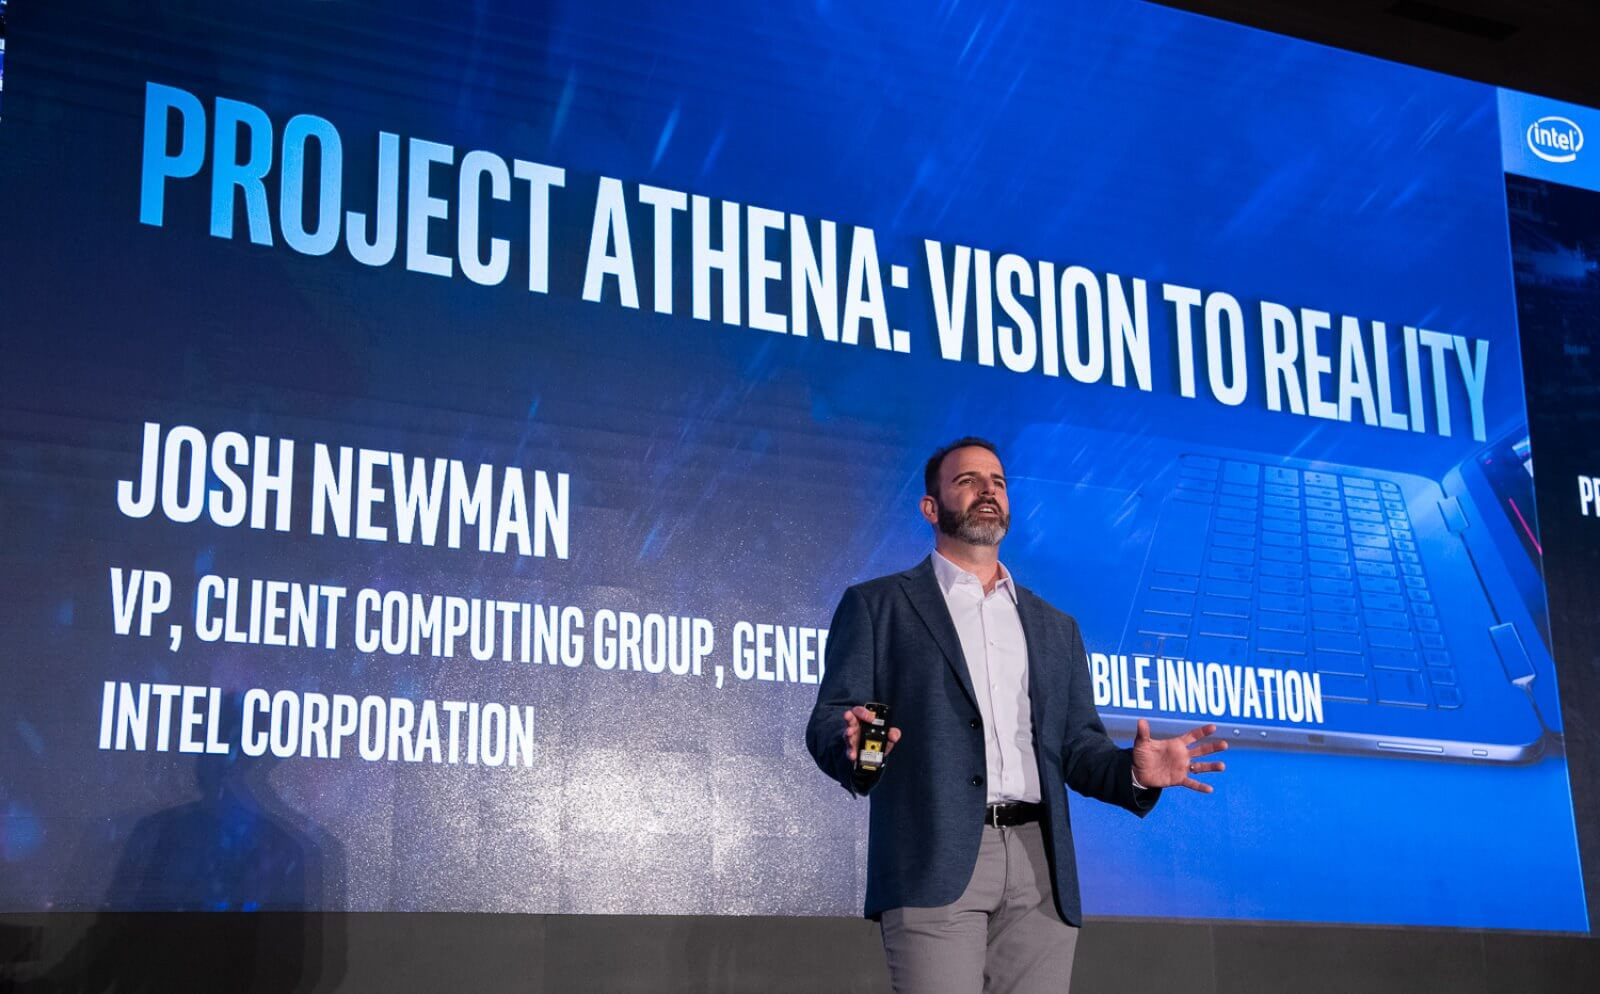 Intel introduces 'Engineered for Mobile Performance' label for Project Athena laptops